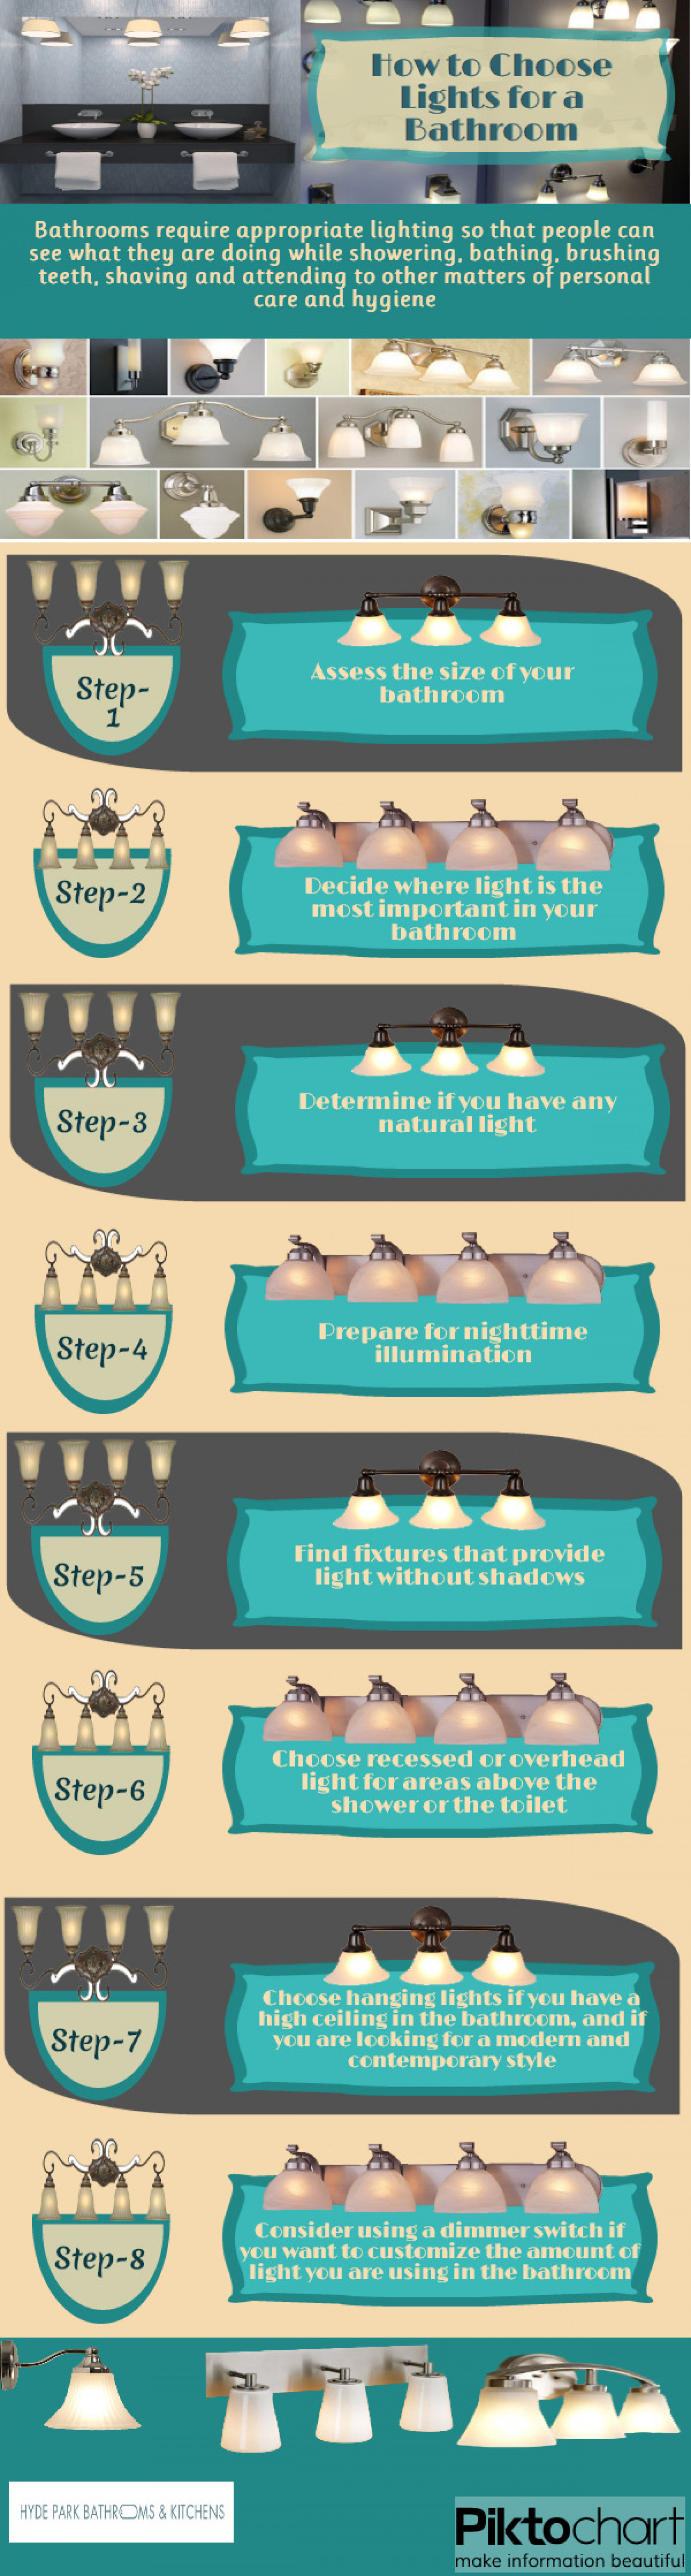 How to Choose Lights for a Bathroom Infographic